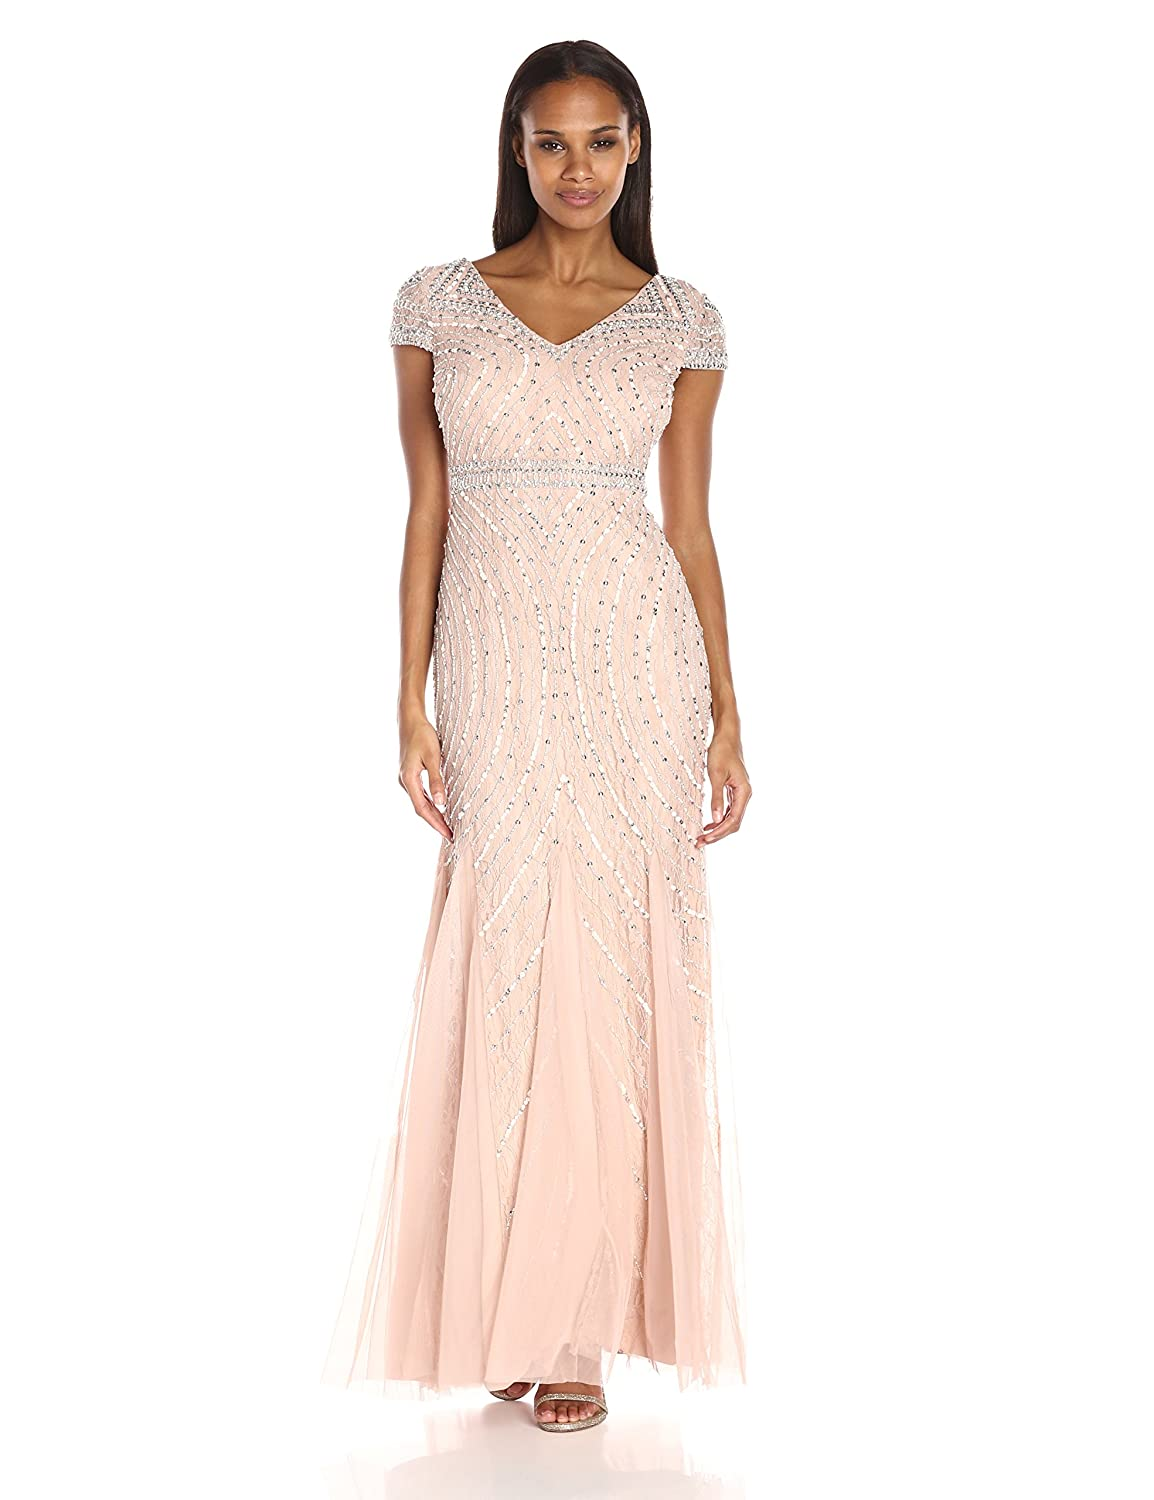 Papell Women\'s Cap Sleeve Beaded Lace Godet Gown | eBay